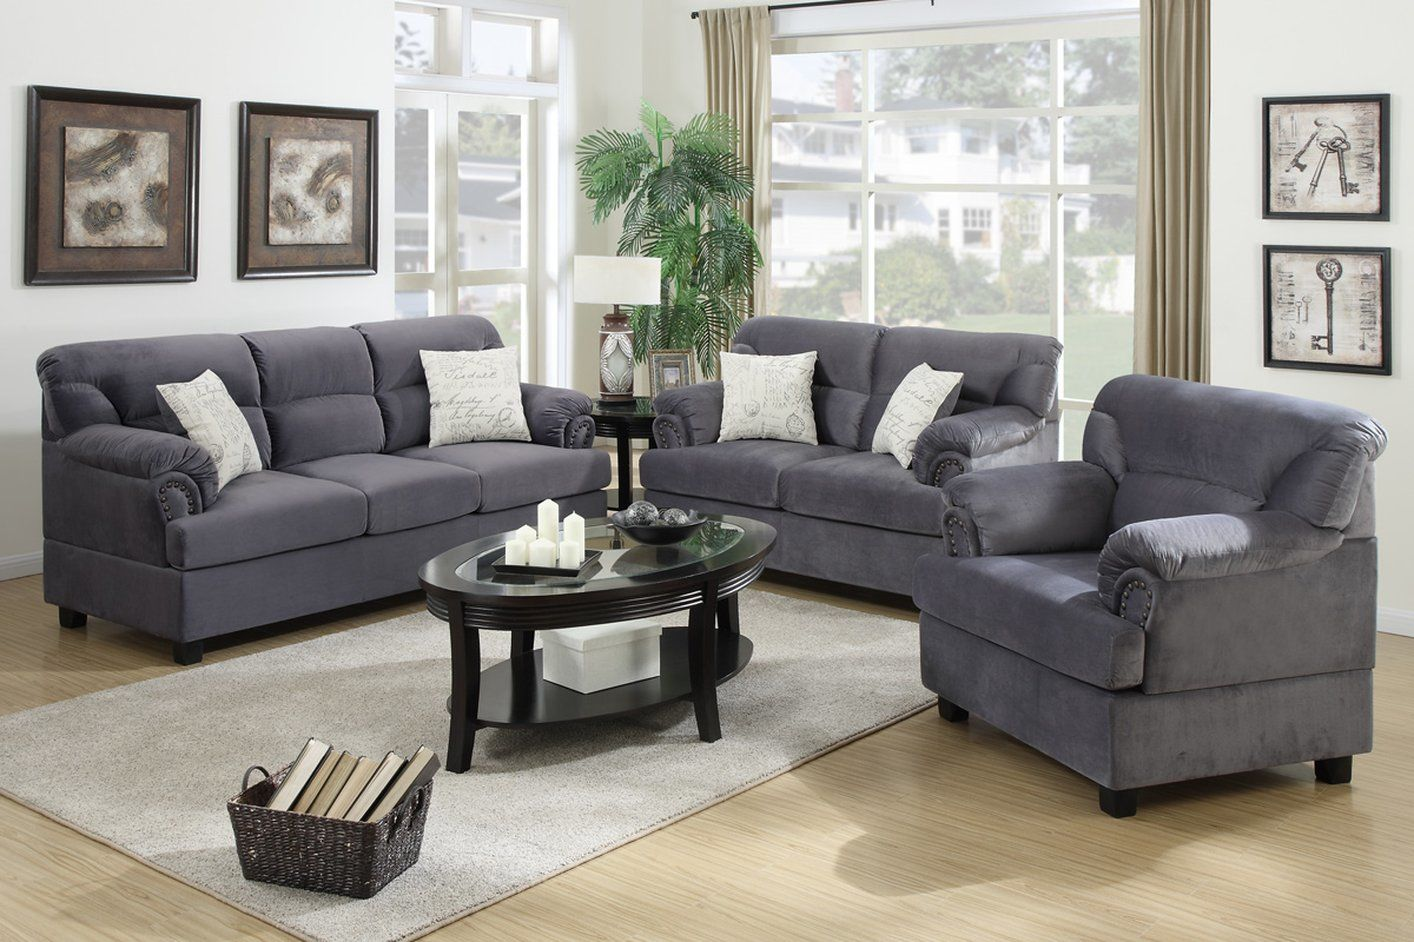 fresh sofas and loveseats inspiration-Awesome sofas and Loveseats Design